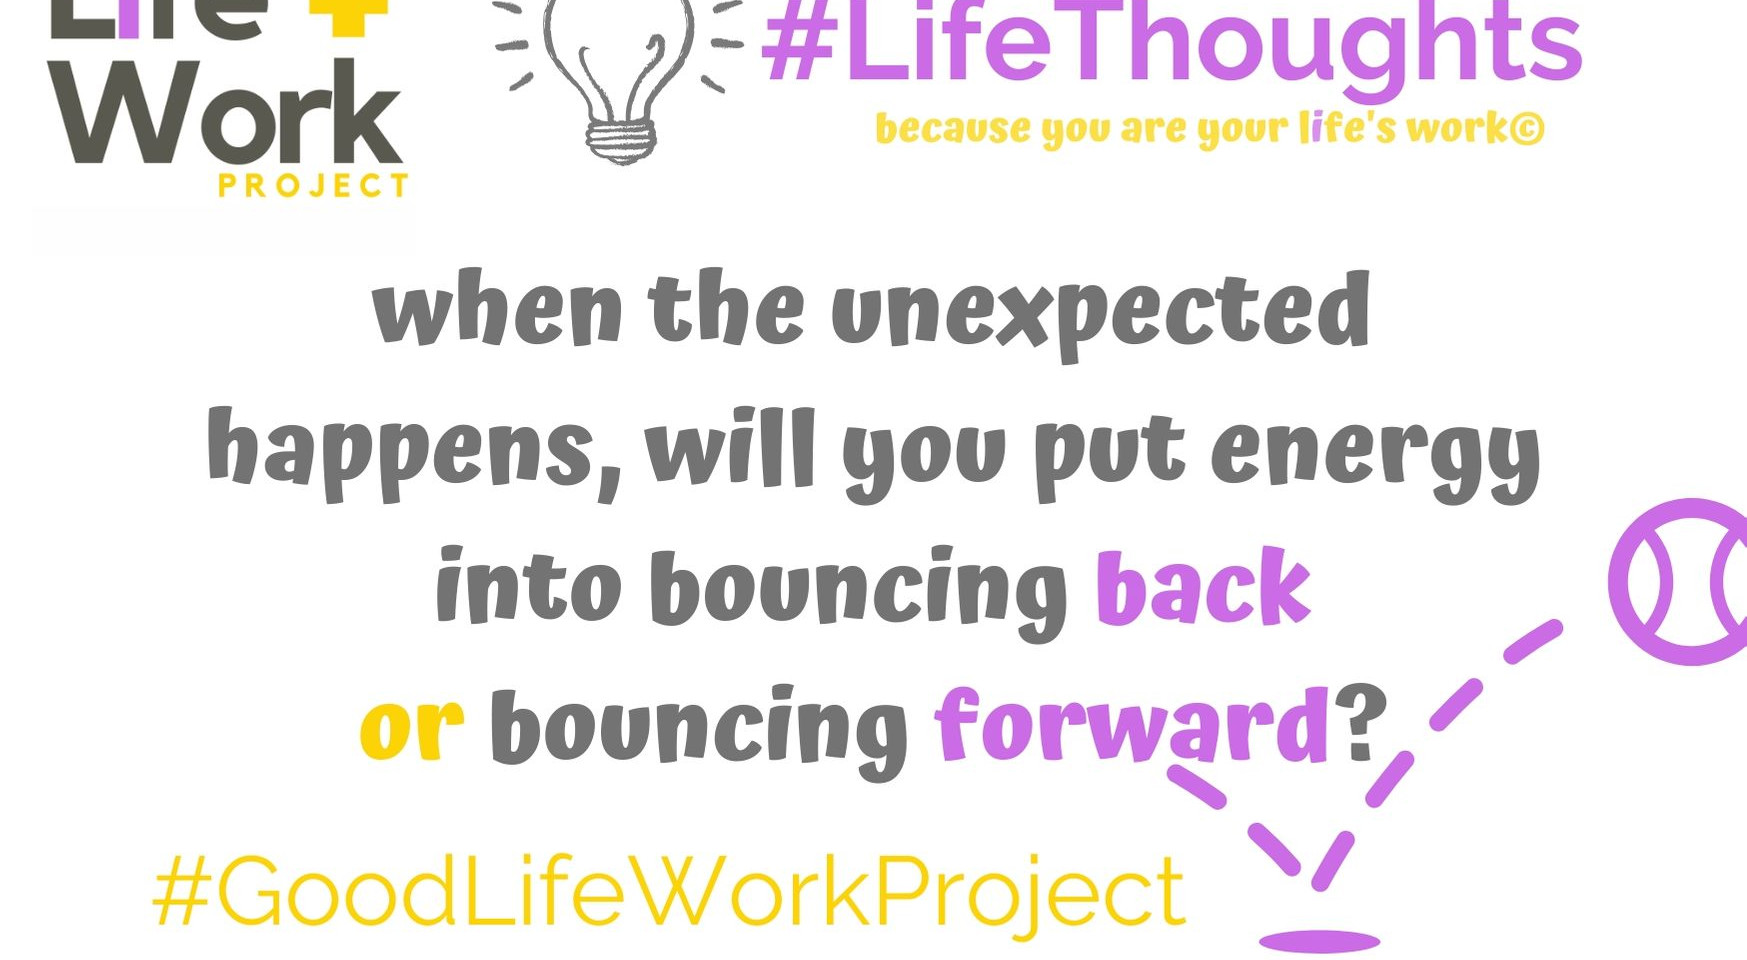 Do you bounce back?